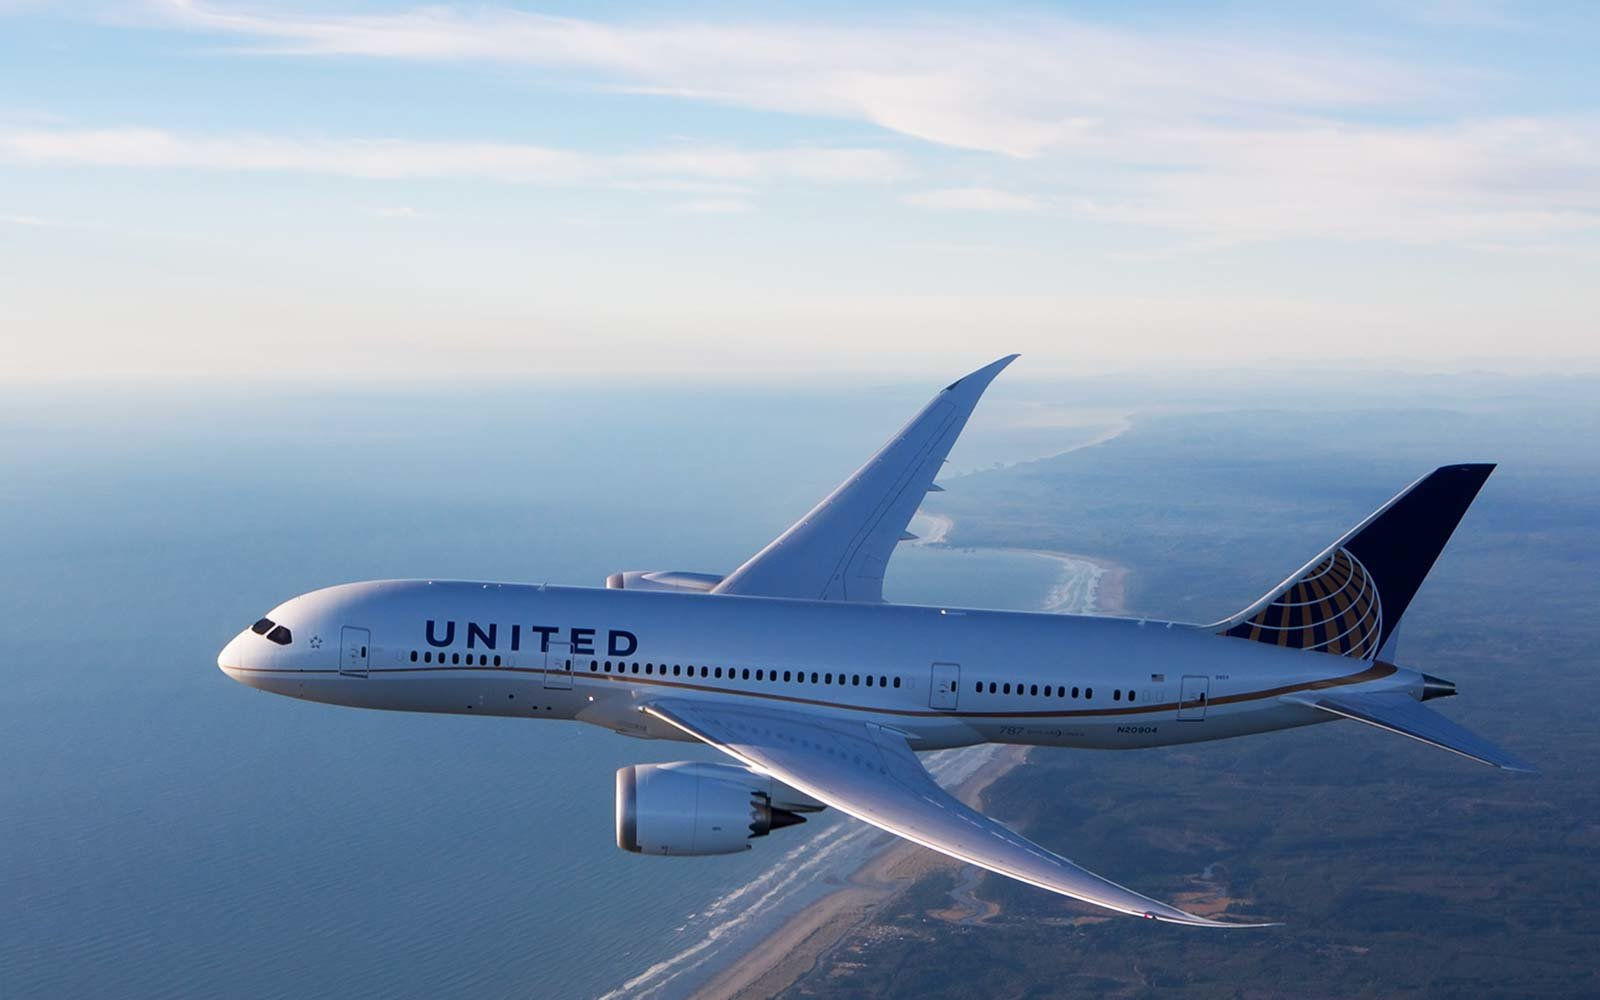 United Airlines Boeing 787 Dreamliner Longest Flight Los Angeles Singapore